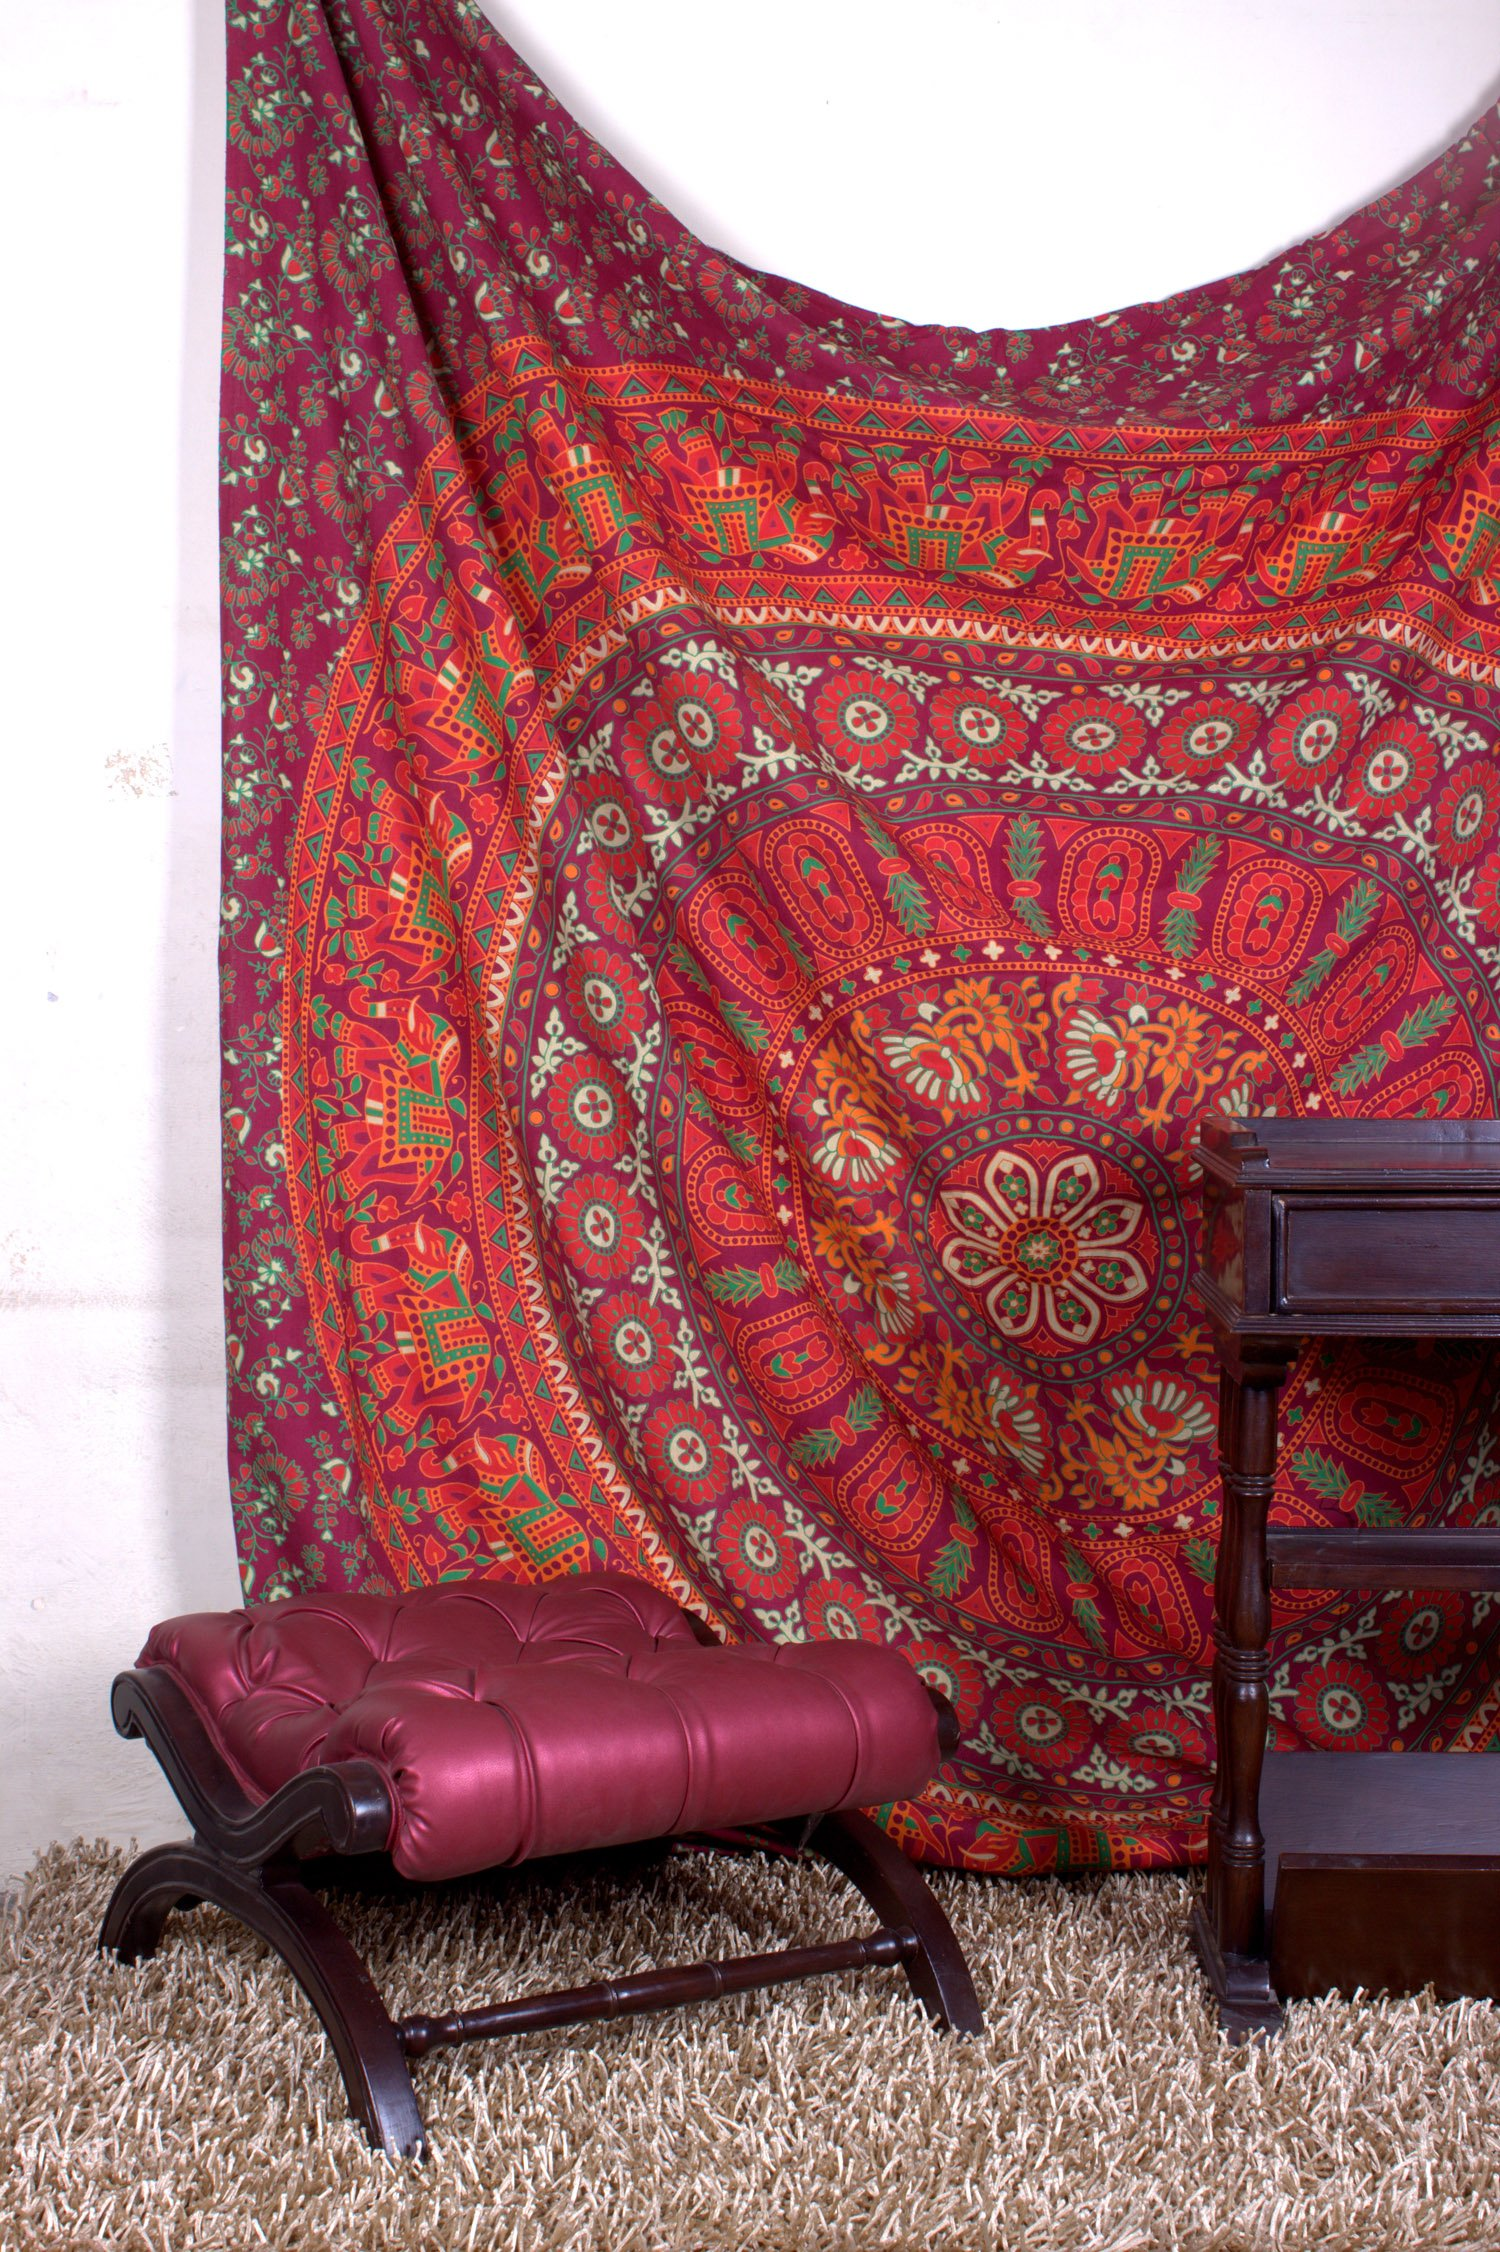 Aakriti Gallery Tapestry Queen hippie Flower Beautiful Artwork wall decor Mandala Beach BedSpread Intricate Indian Bedspread Tapestries 92x82 Inches (Maroon)